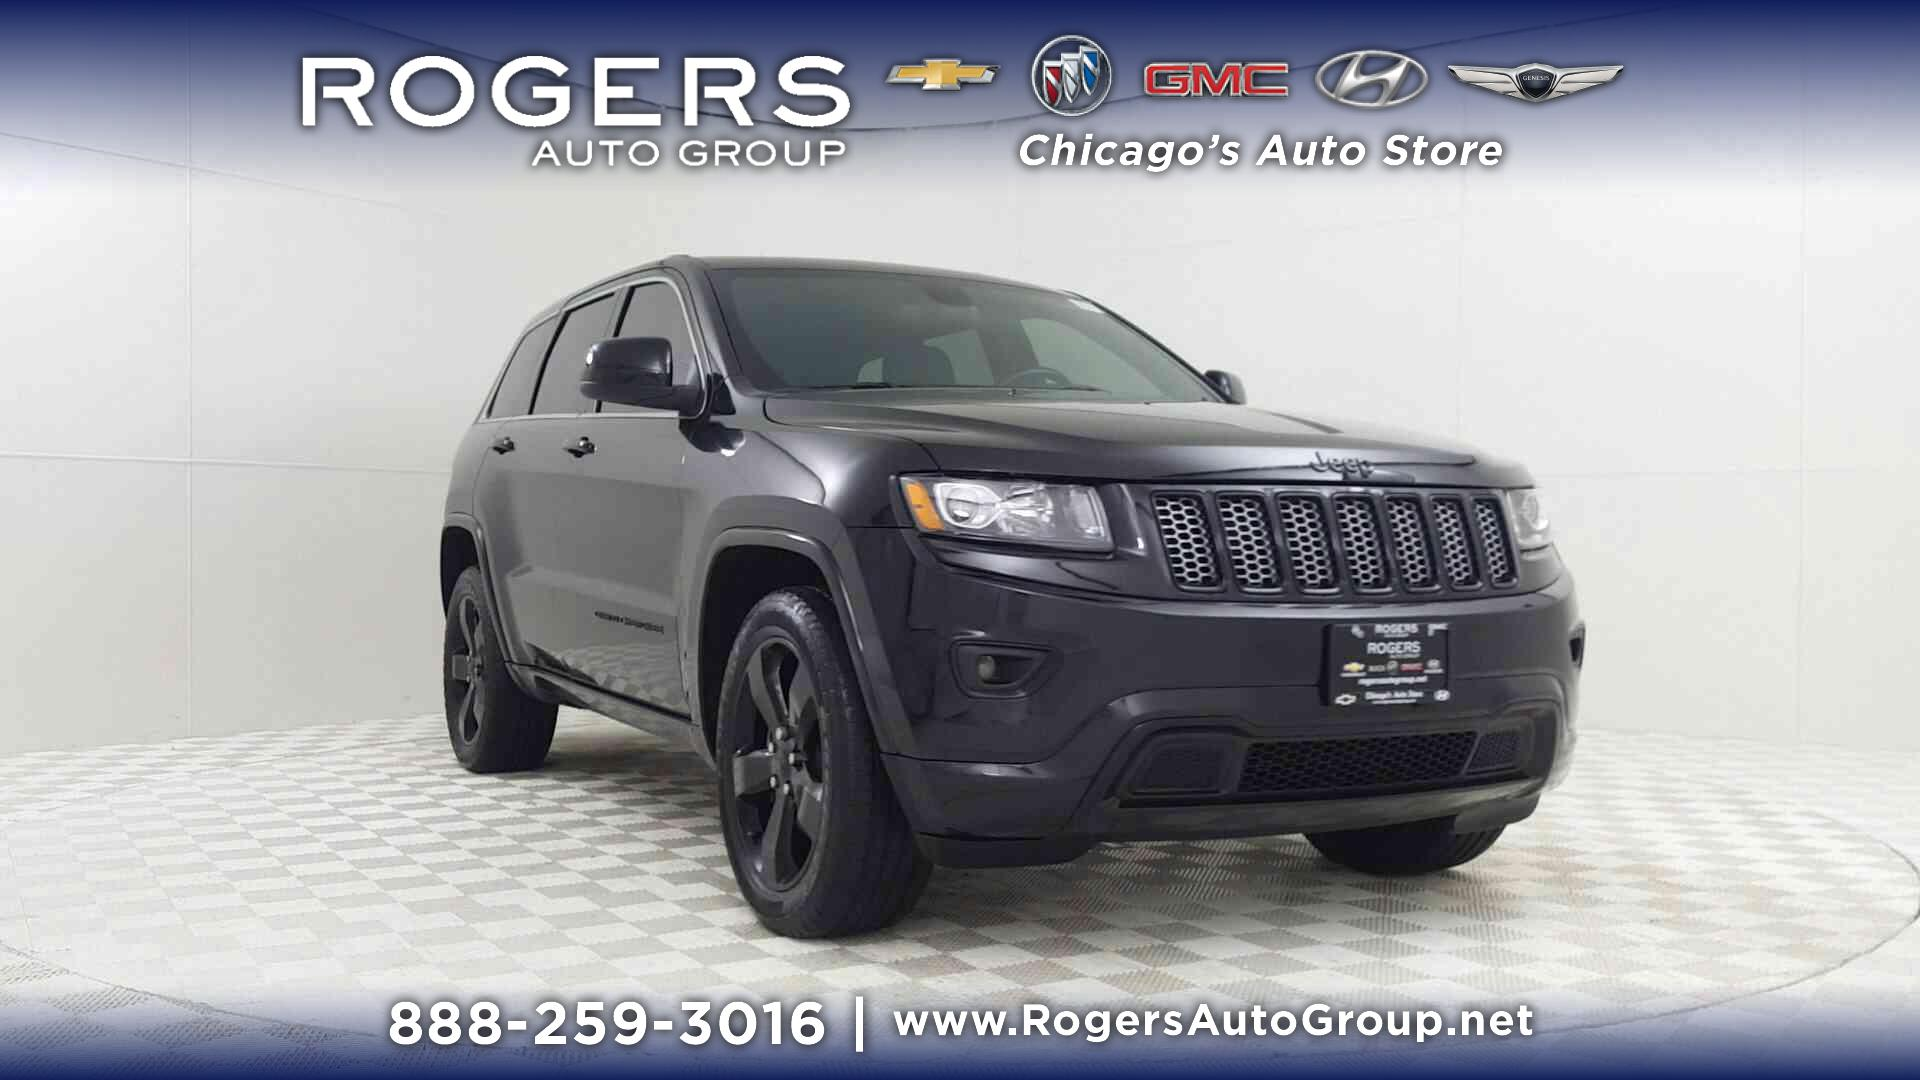 Jeep Dealer Chicago 2019 2020 New Car Release And Reviews